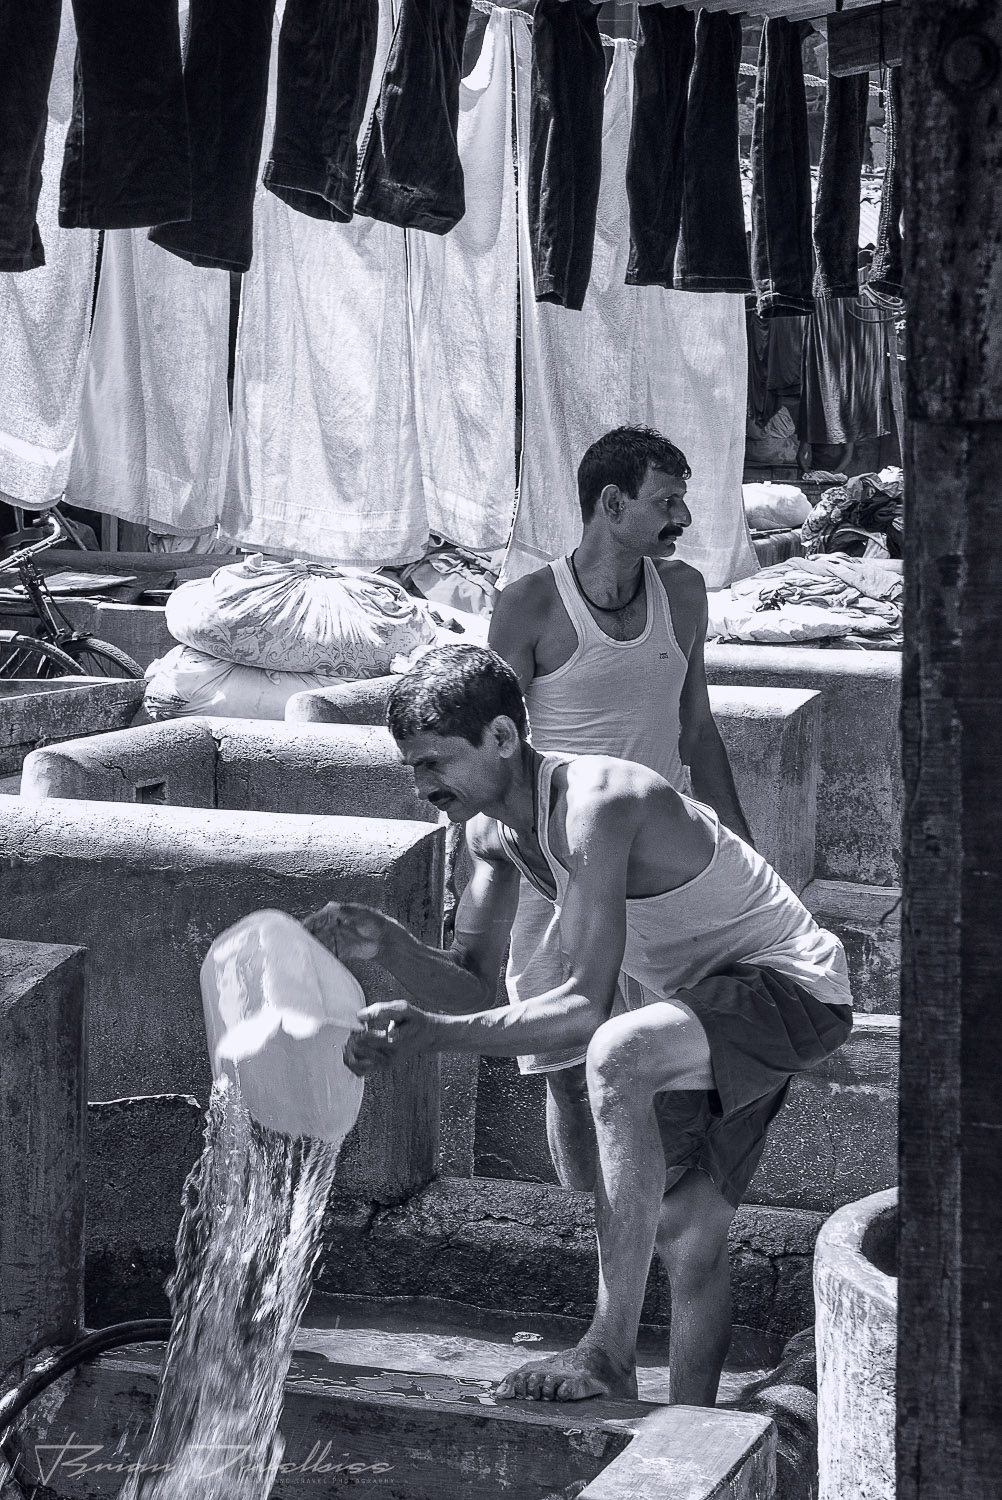 Man pulls clothes from an outdoor laundry tub at Dhobi Ghat in Mumbai, India in black and white.